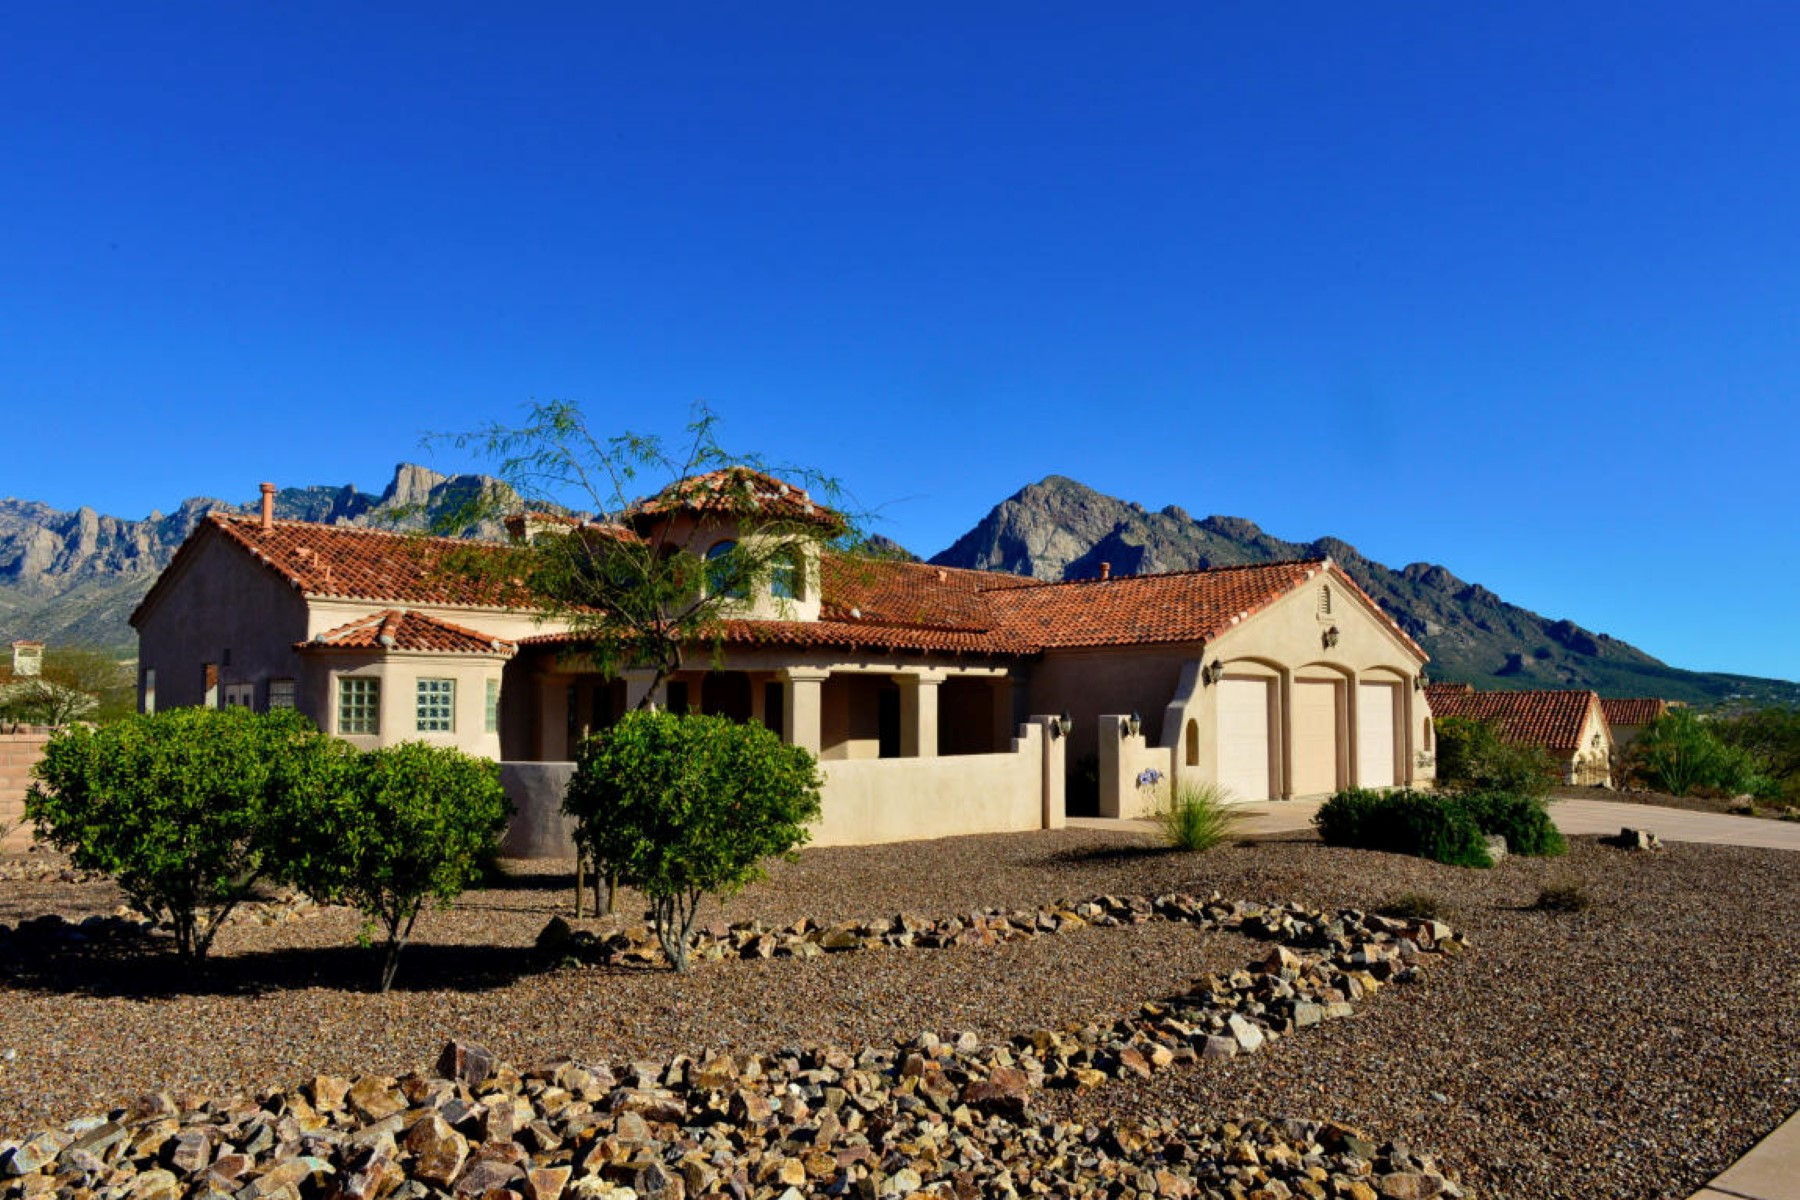 Single Family Home for Sale at Pristine Upscale Home In Gated Pusch Ridge Vistas. 10916 N Pusch Ridge View Place Oro Valley, Arizona 85737 United States